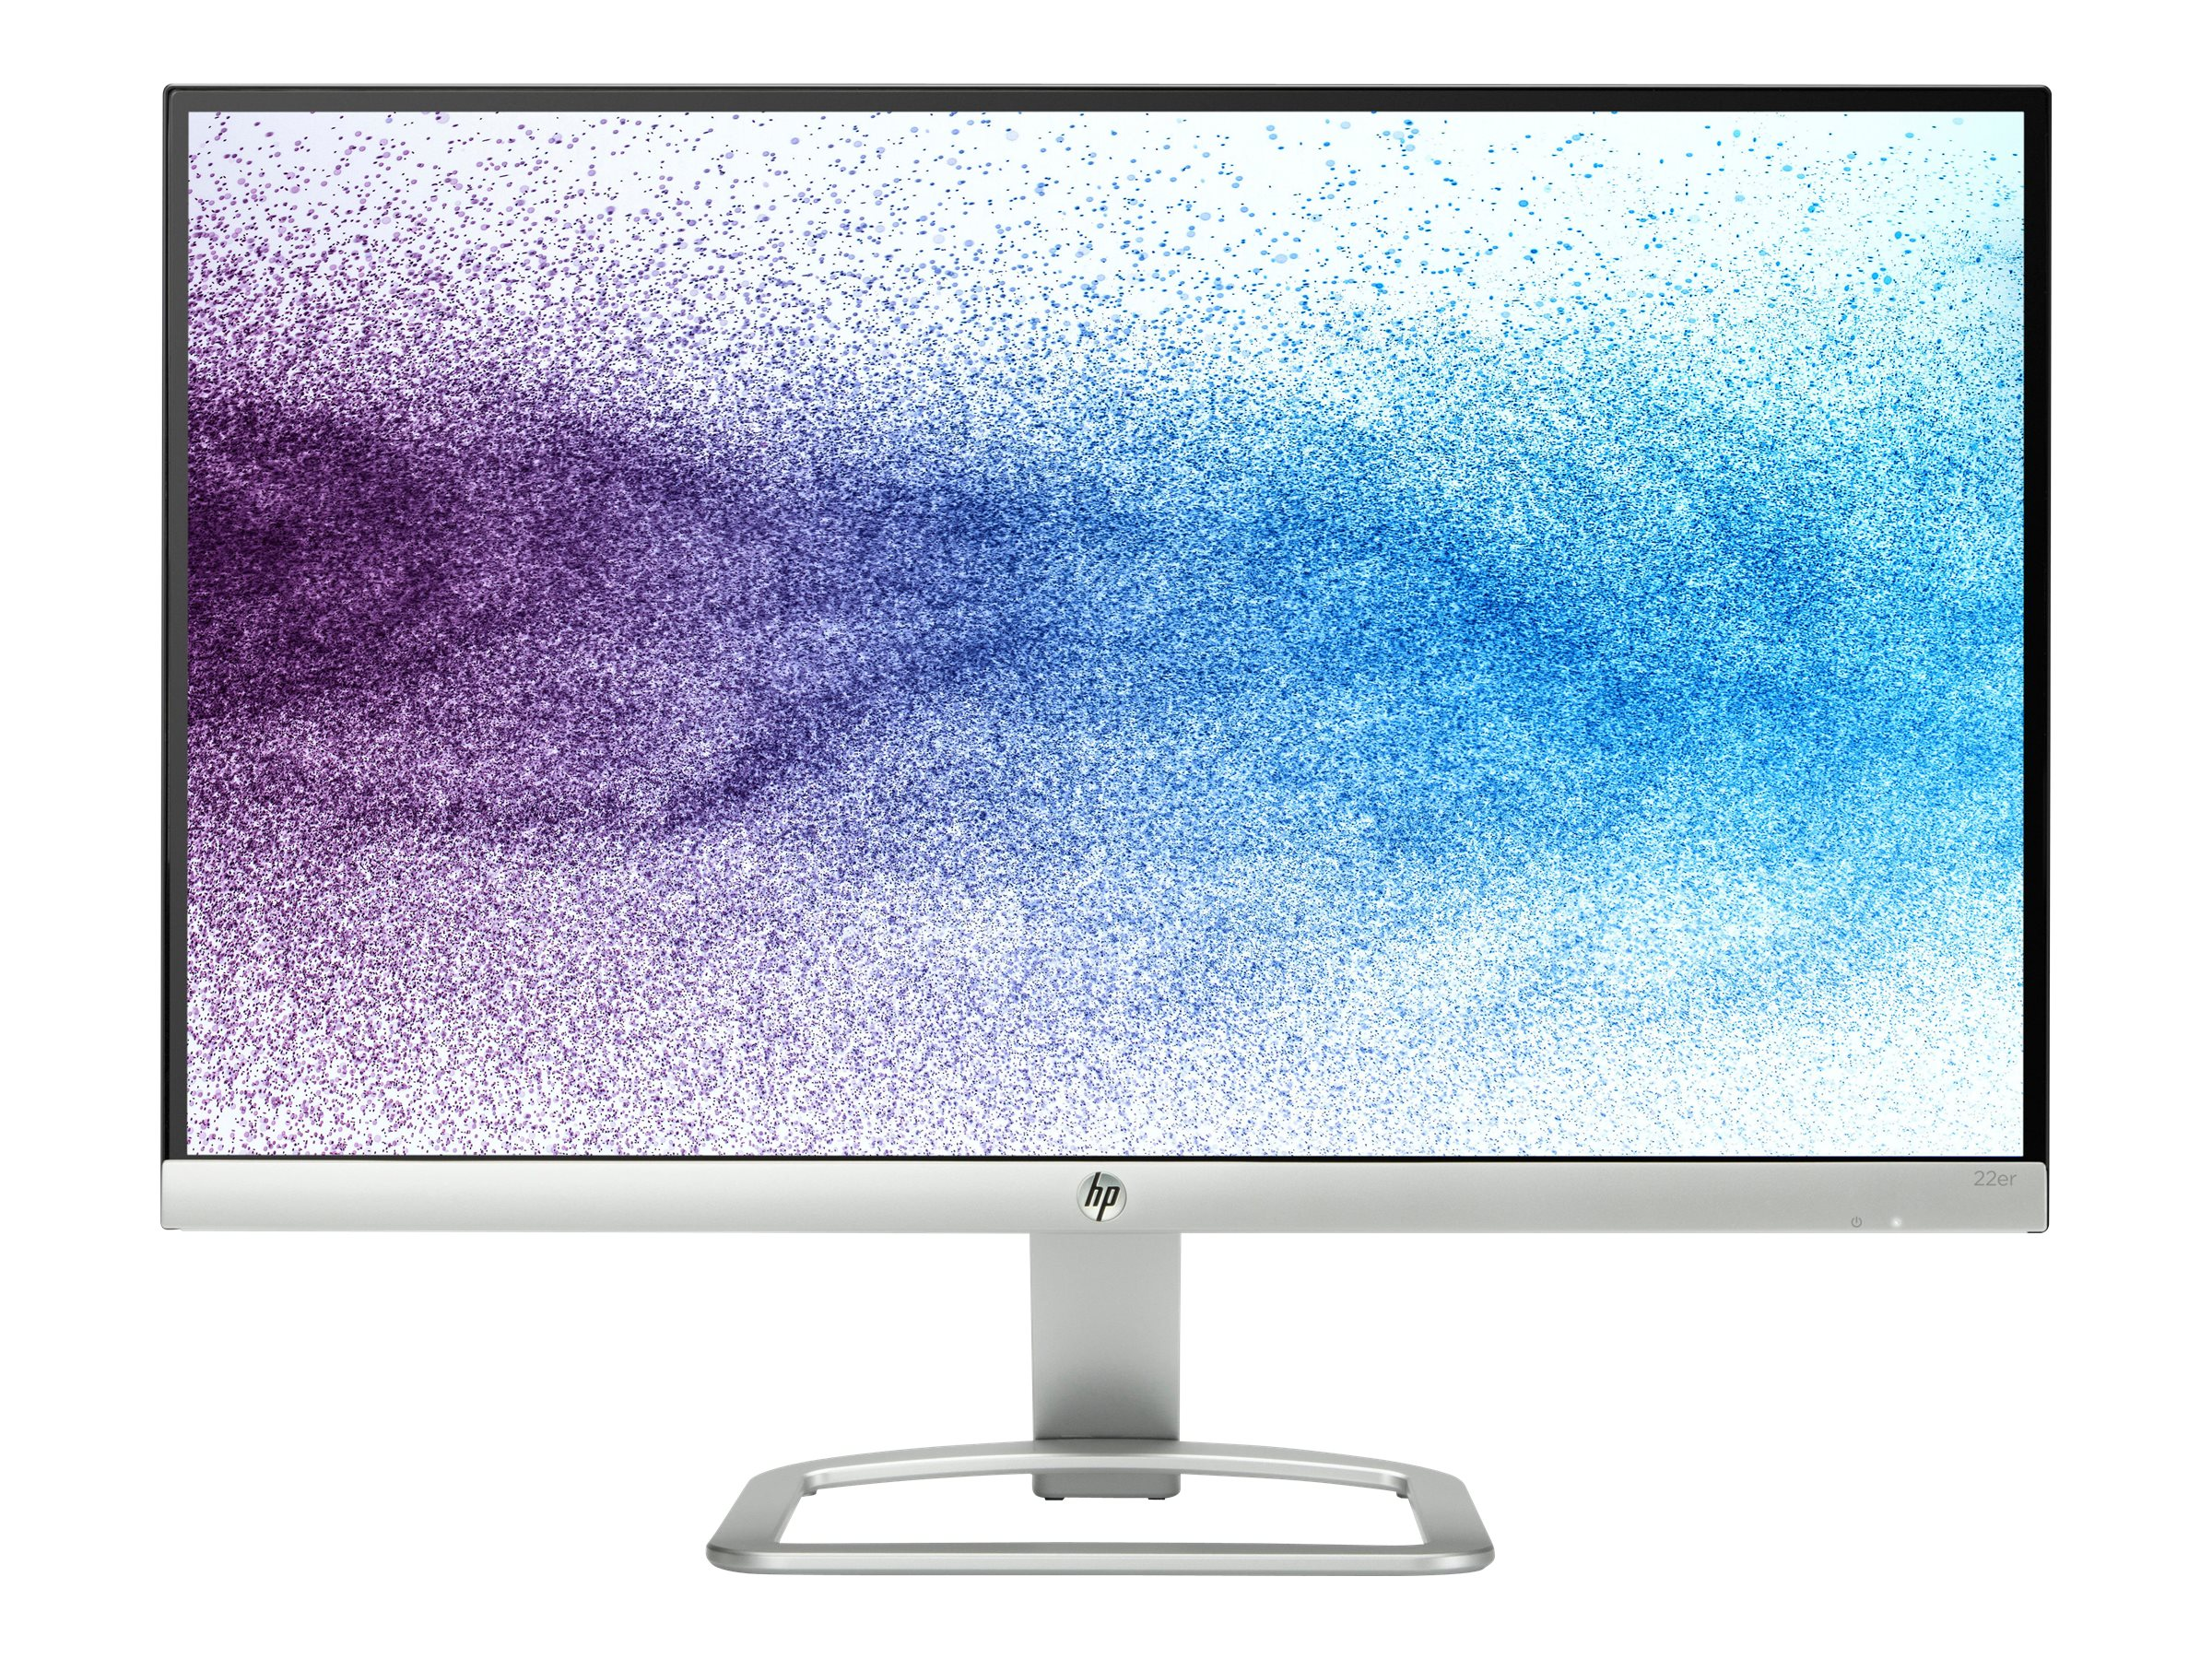 "Image for Hp 22Er - Led Monitor - Full Hd (1080P) - 21.5"" from Circuit City"